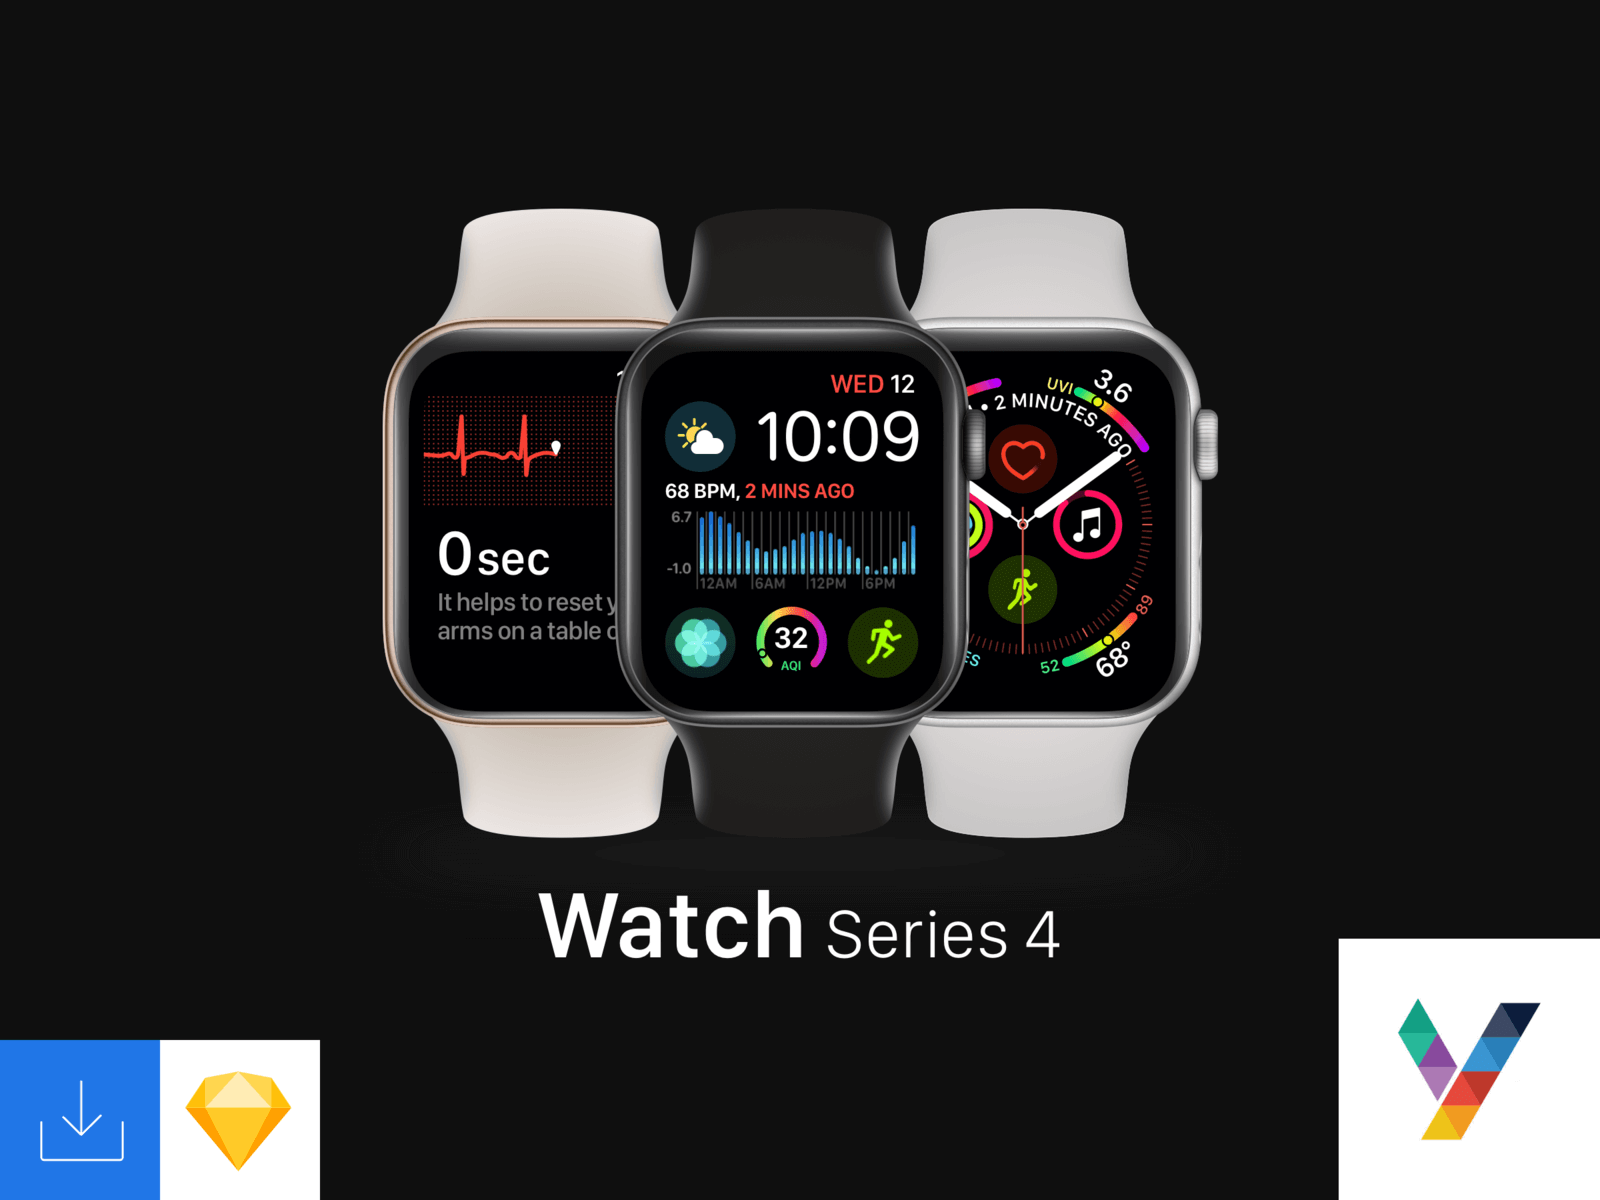 Watch Series 4 Mockup cover image